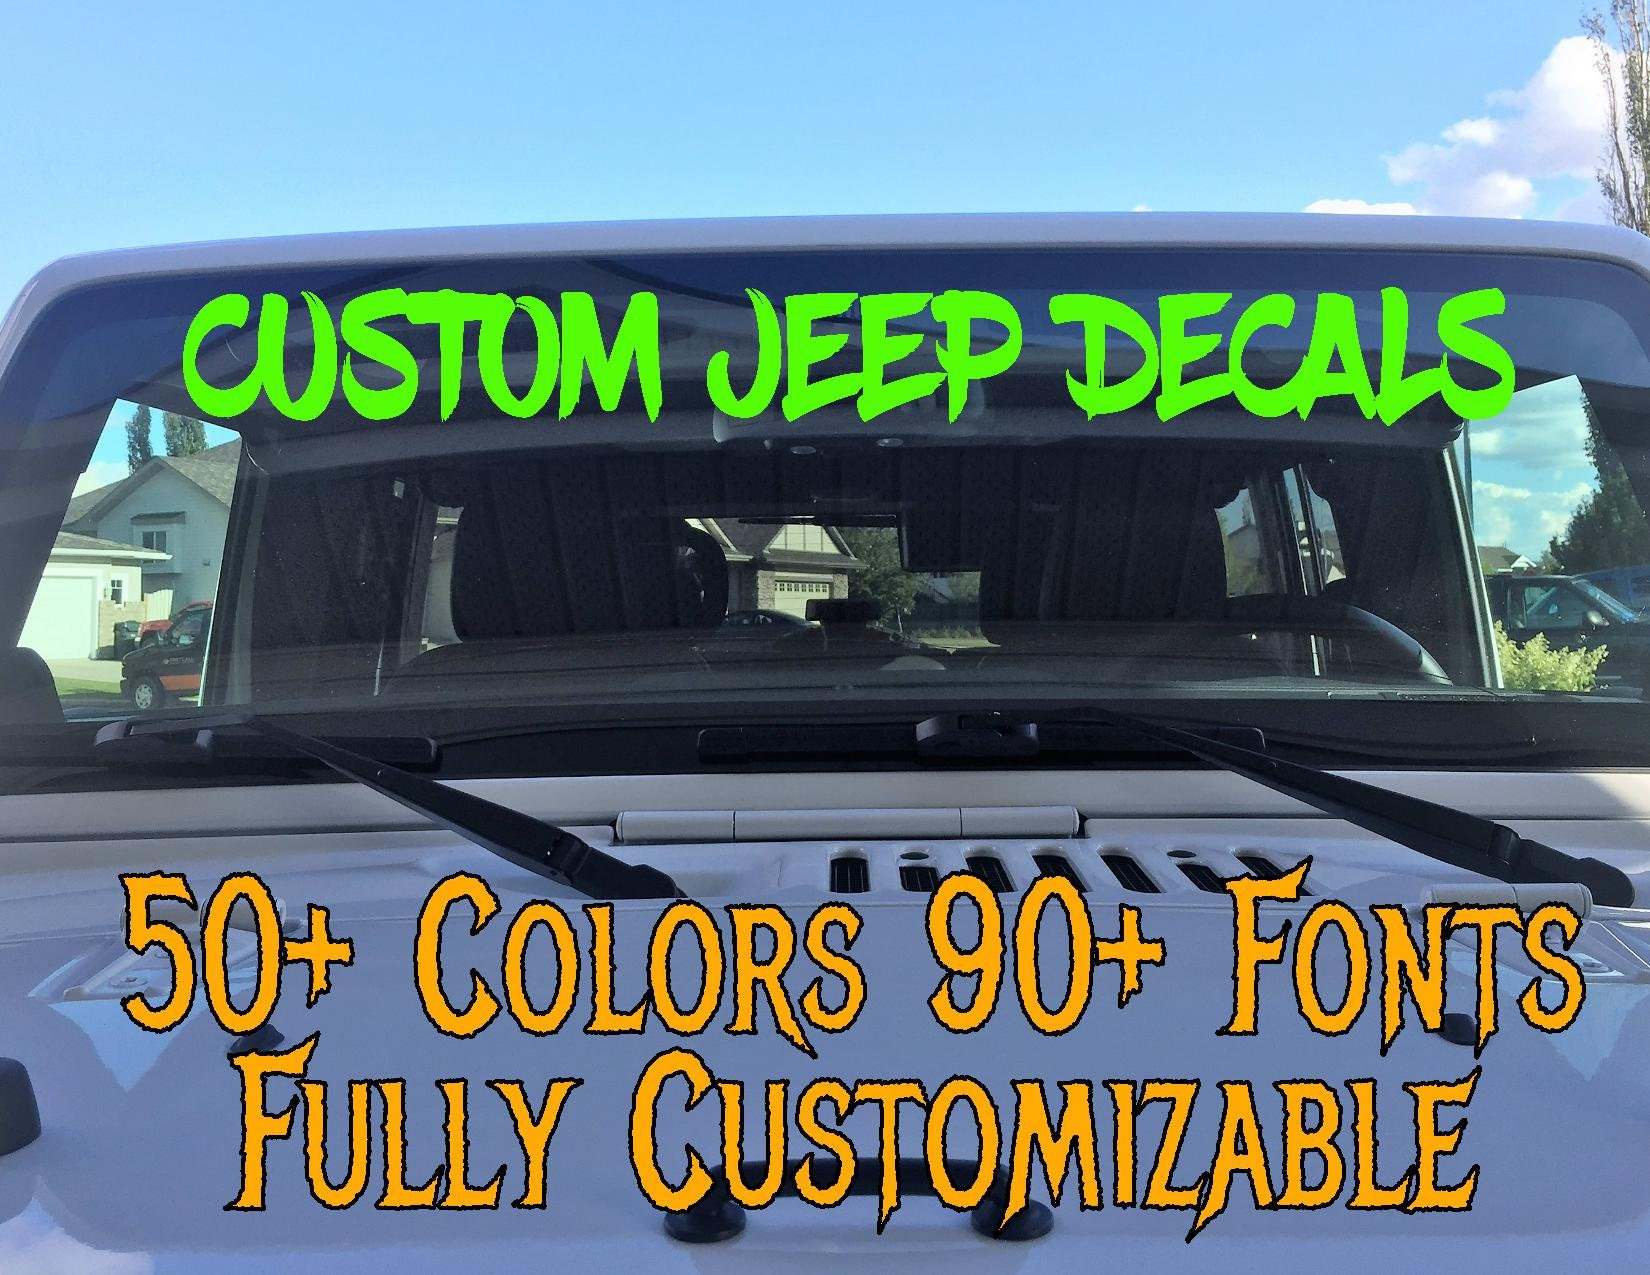 Custom Jeep Wrangler Decals Body Decals Car Truck Window - Car windshield decals custom